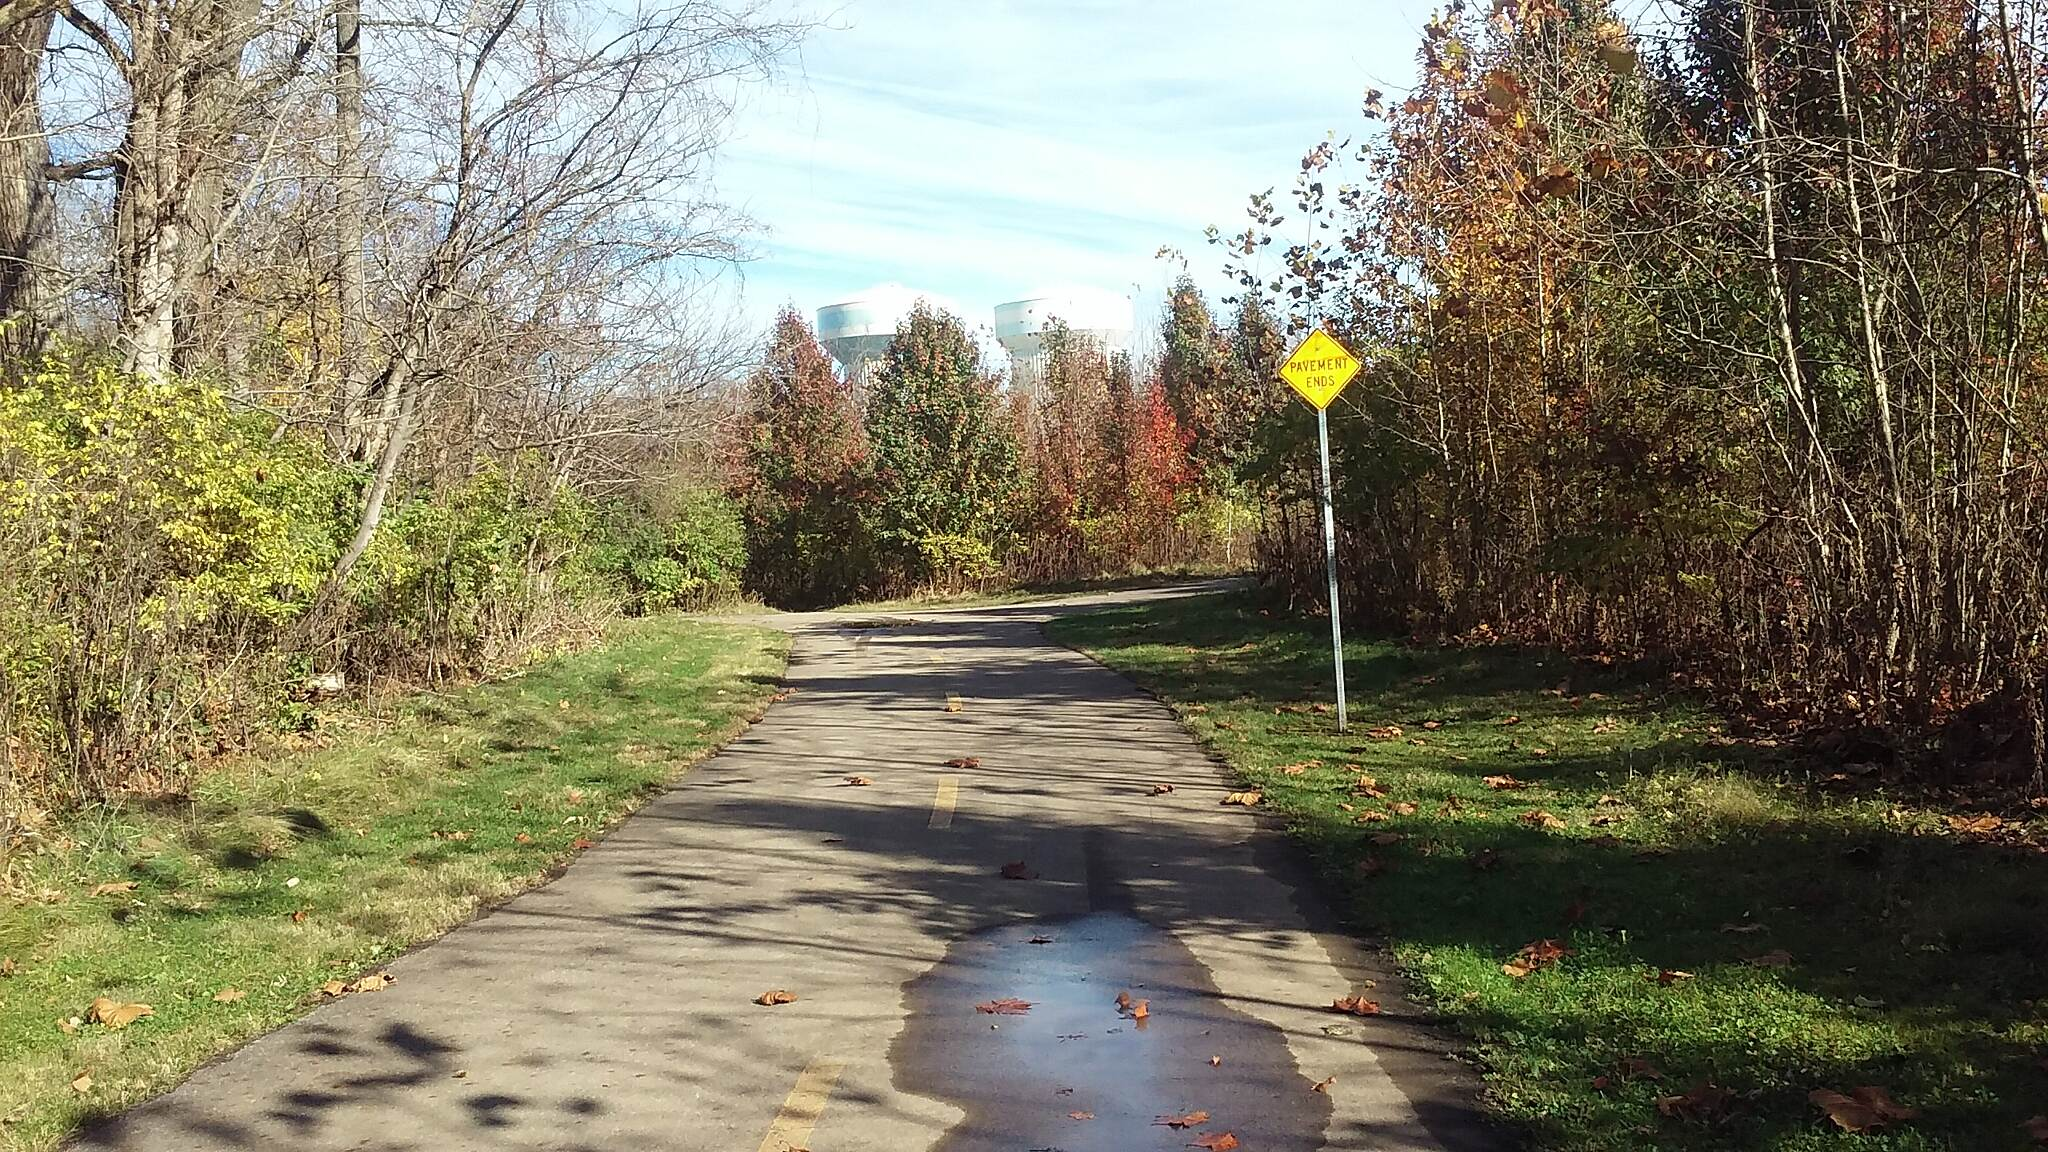 Blacklick Creek Greenway Trail Nov 2015 Northbound, straight to under Refugee Rd, right makes loop around Abbie Lakes Apartments